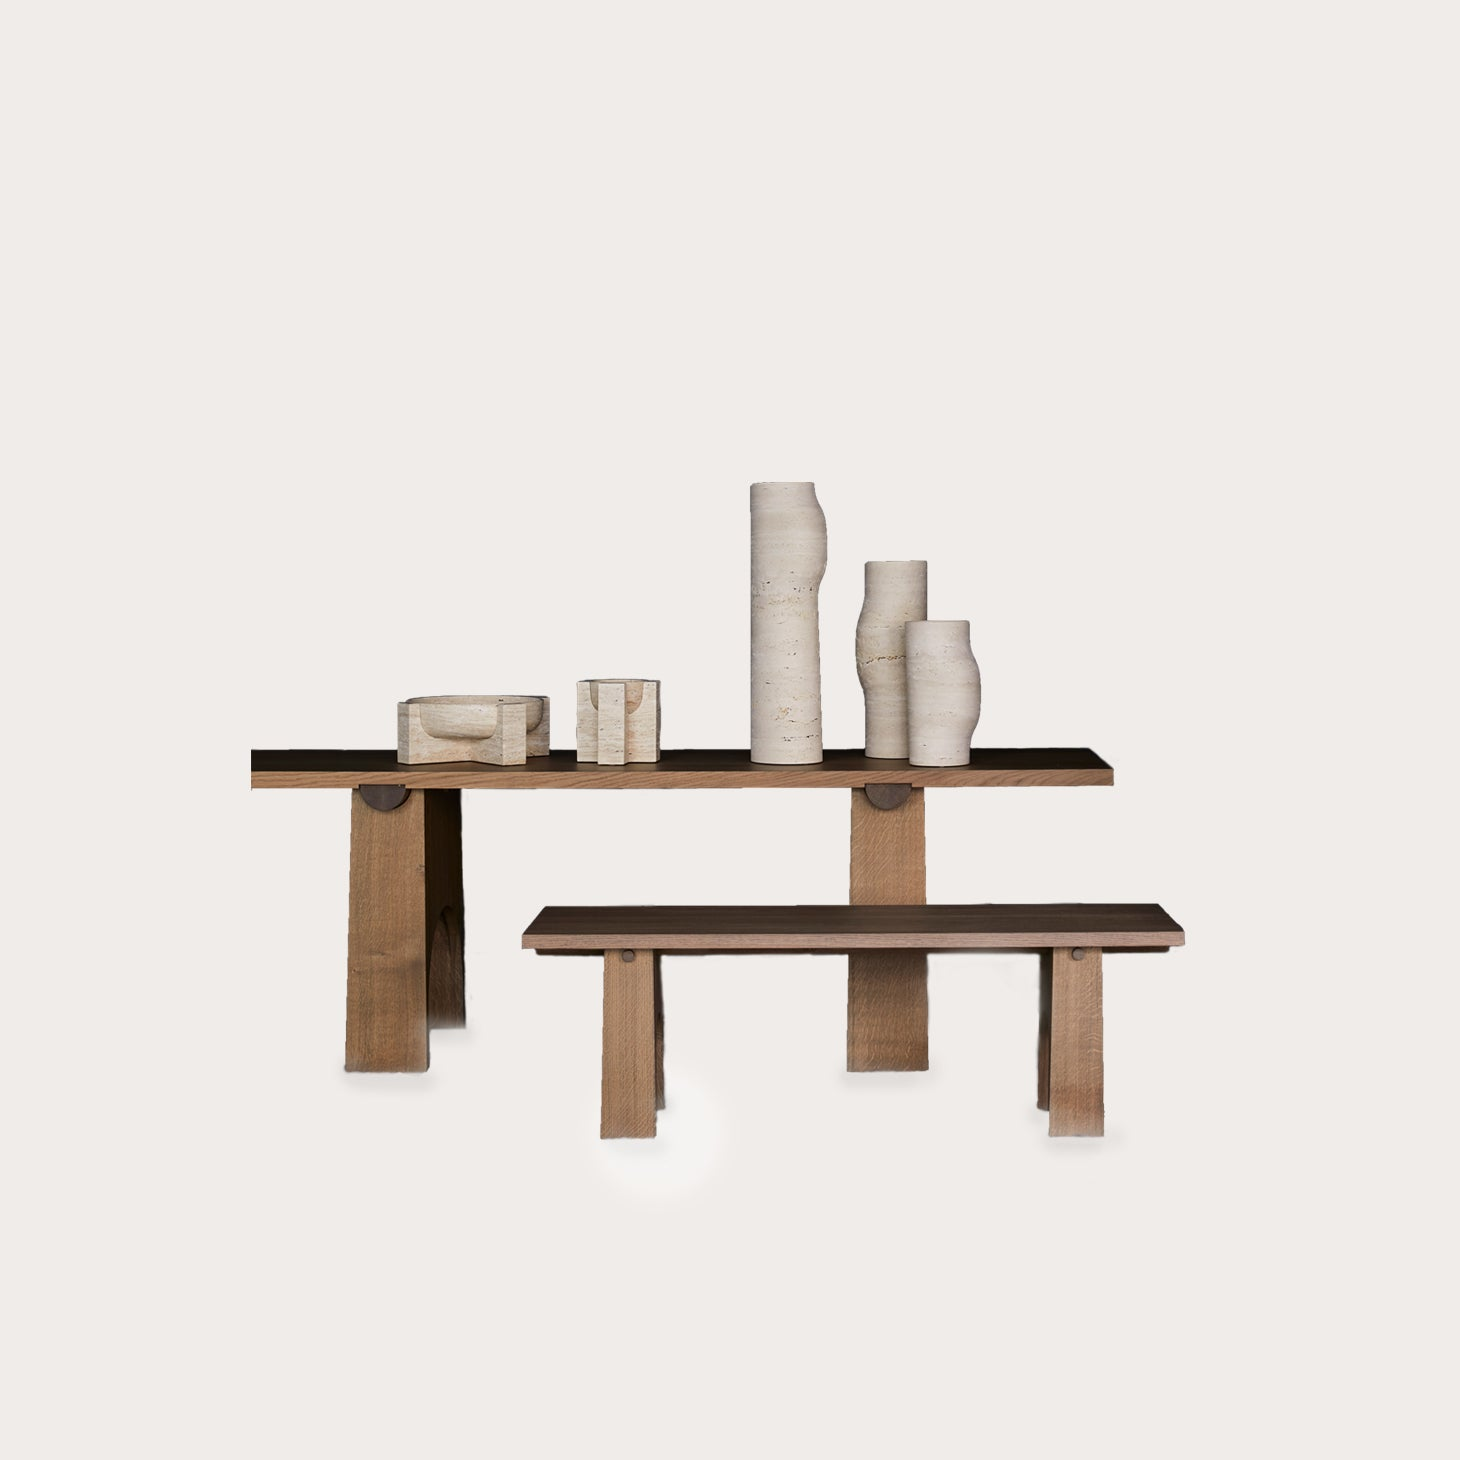 SOL Dining Table Tables Christophe Delcourt Designer Furniture Sku: 008-230-10497